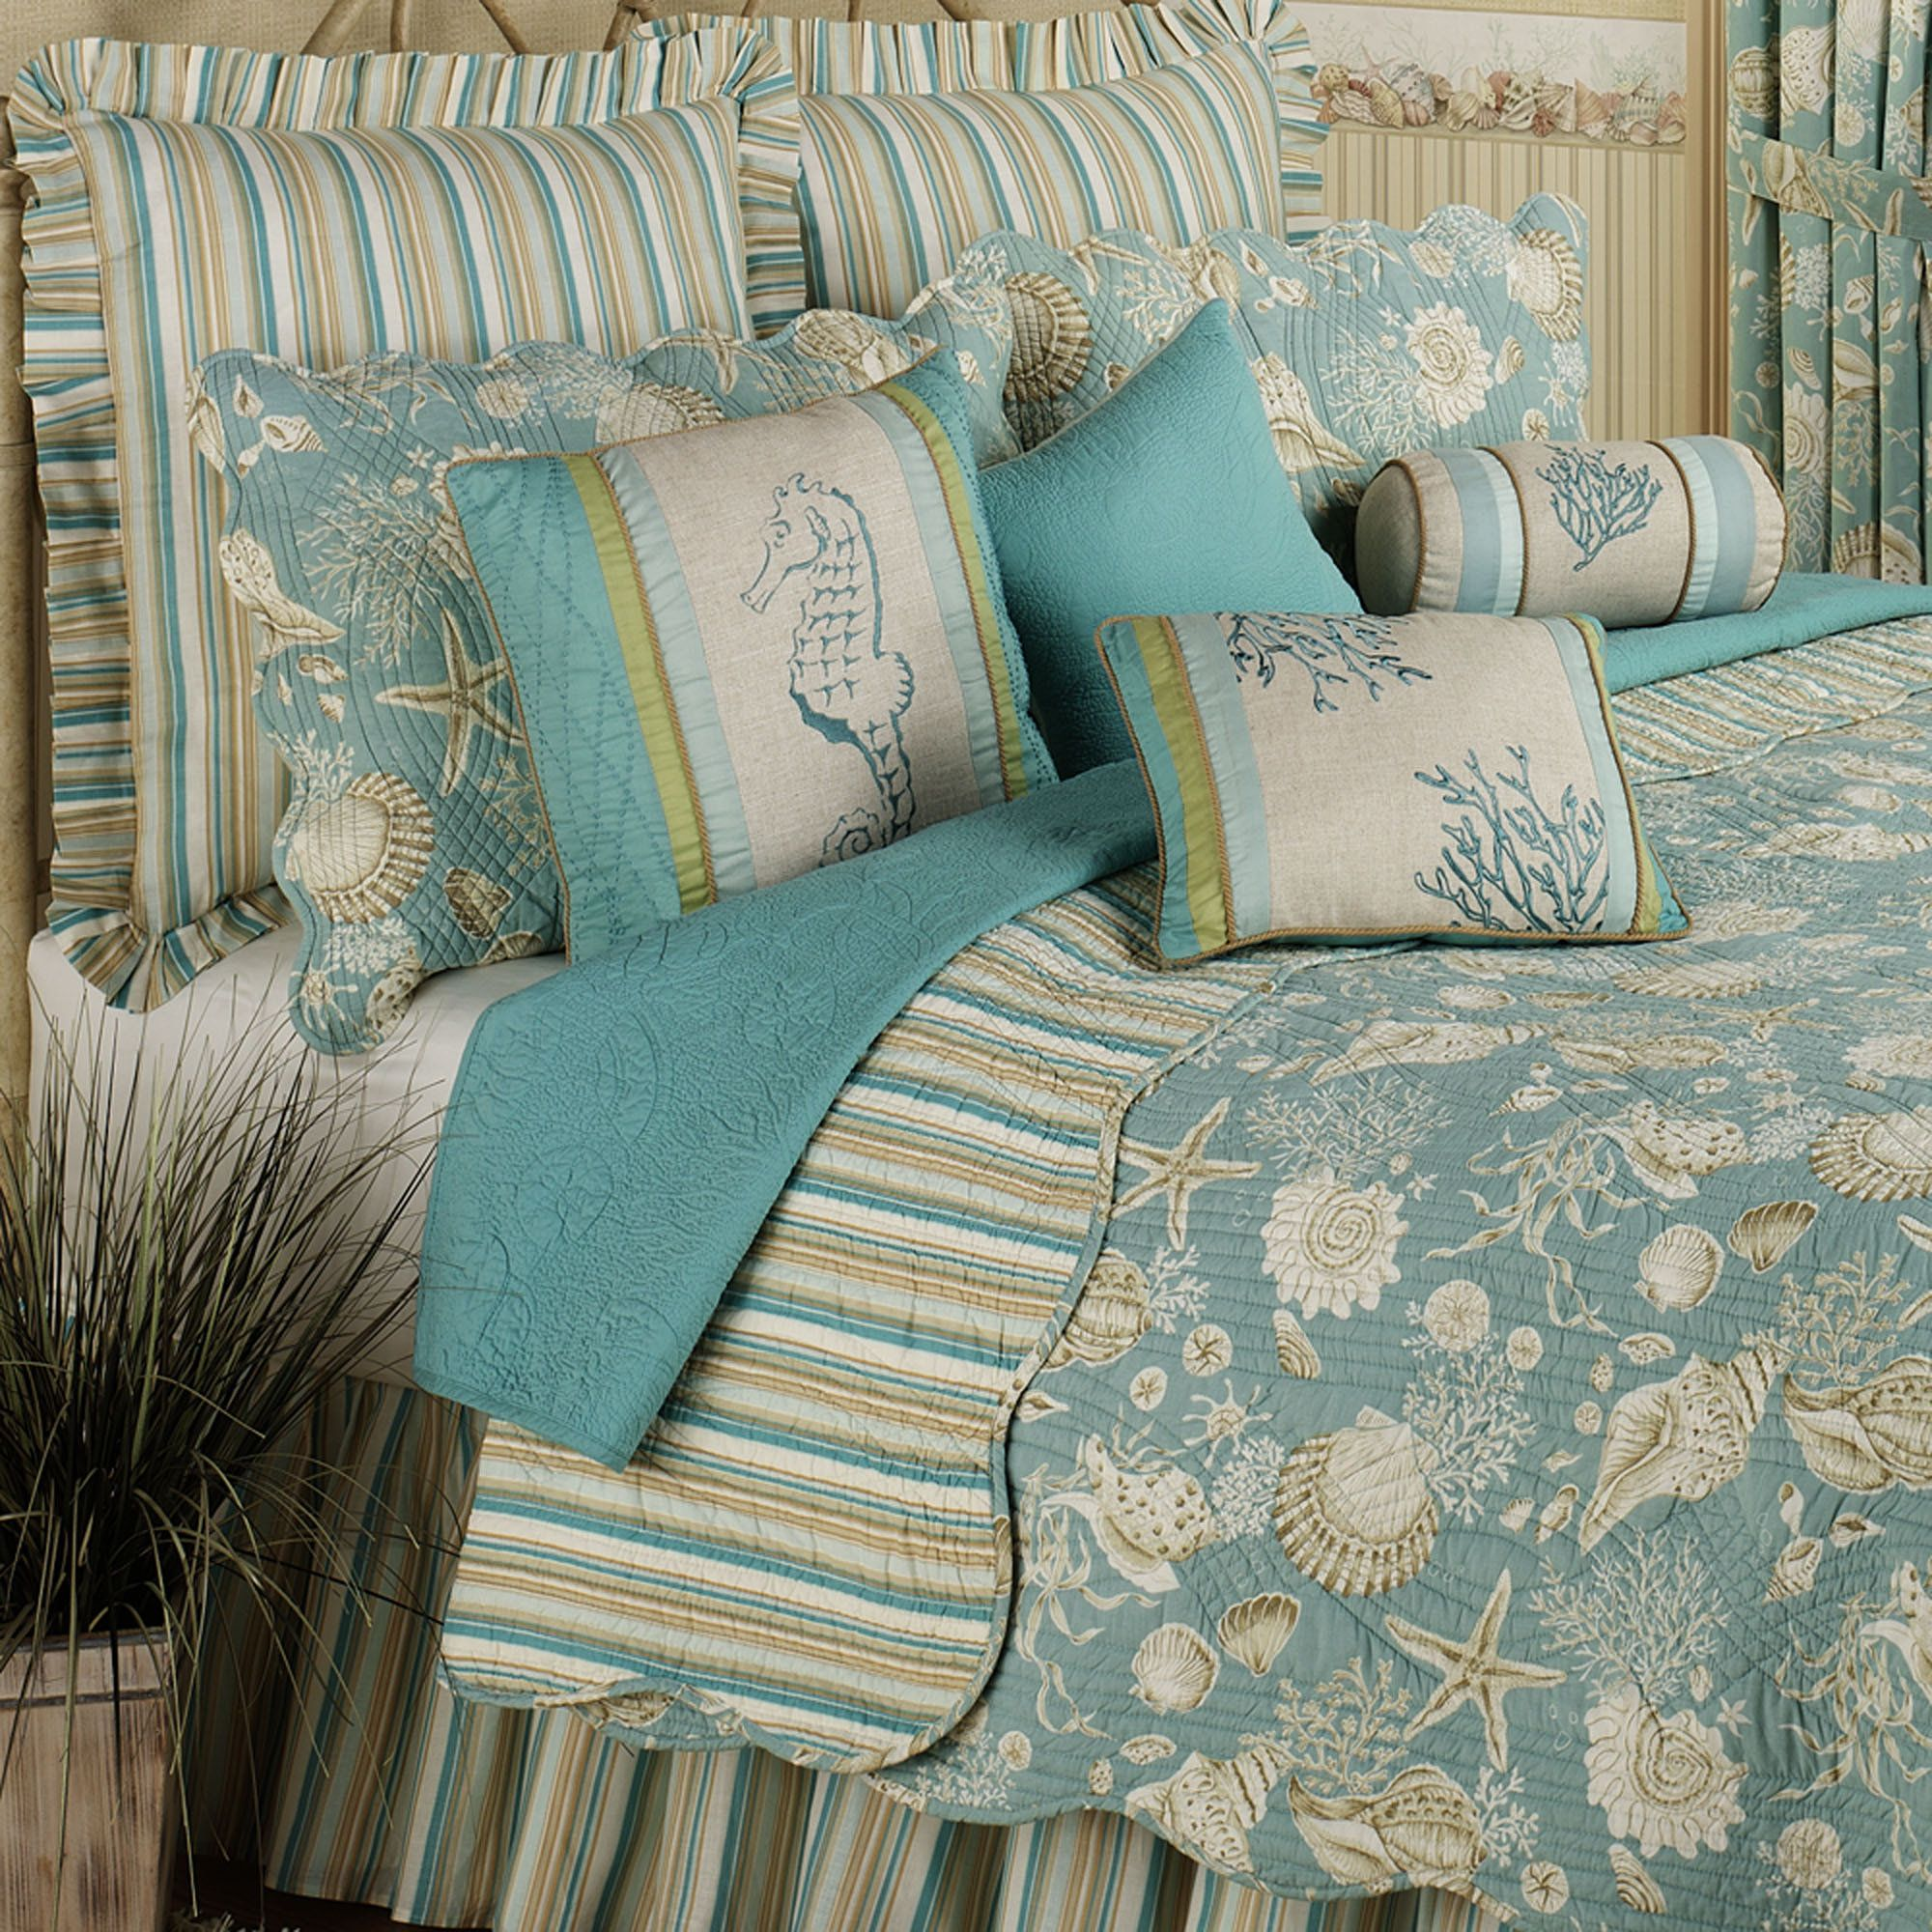 Natural Shells Coastal Quilt Bedding For The Home